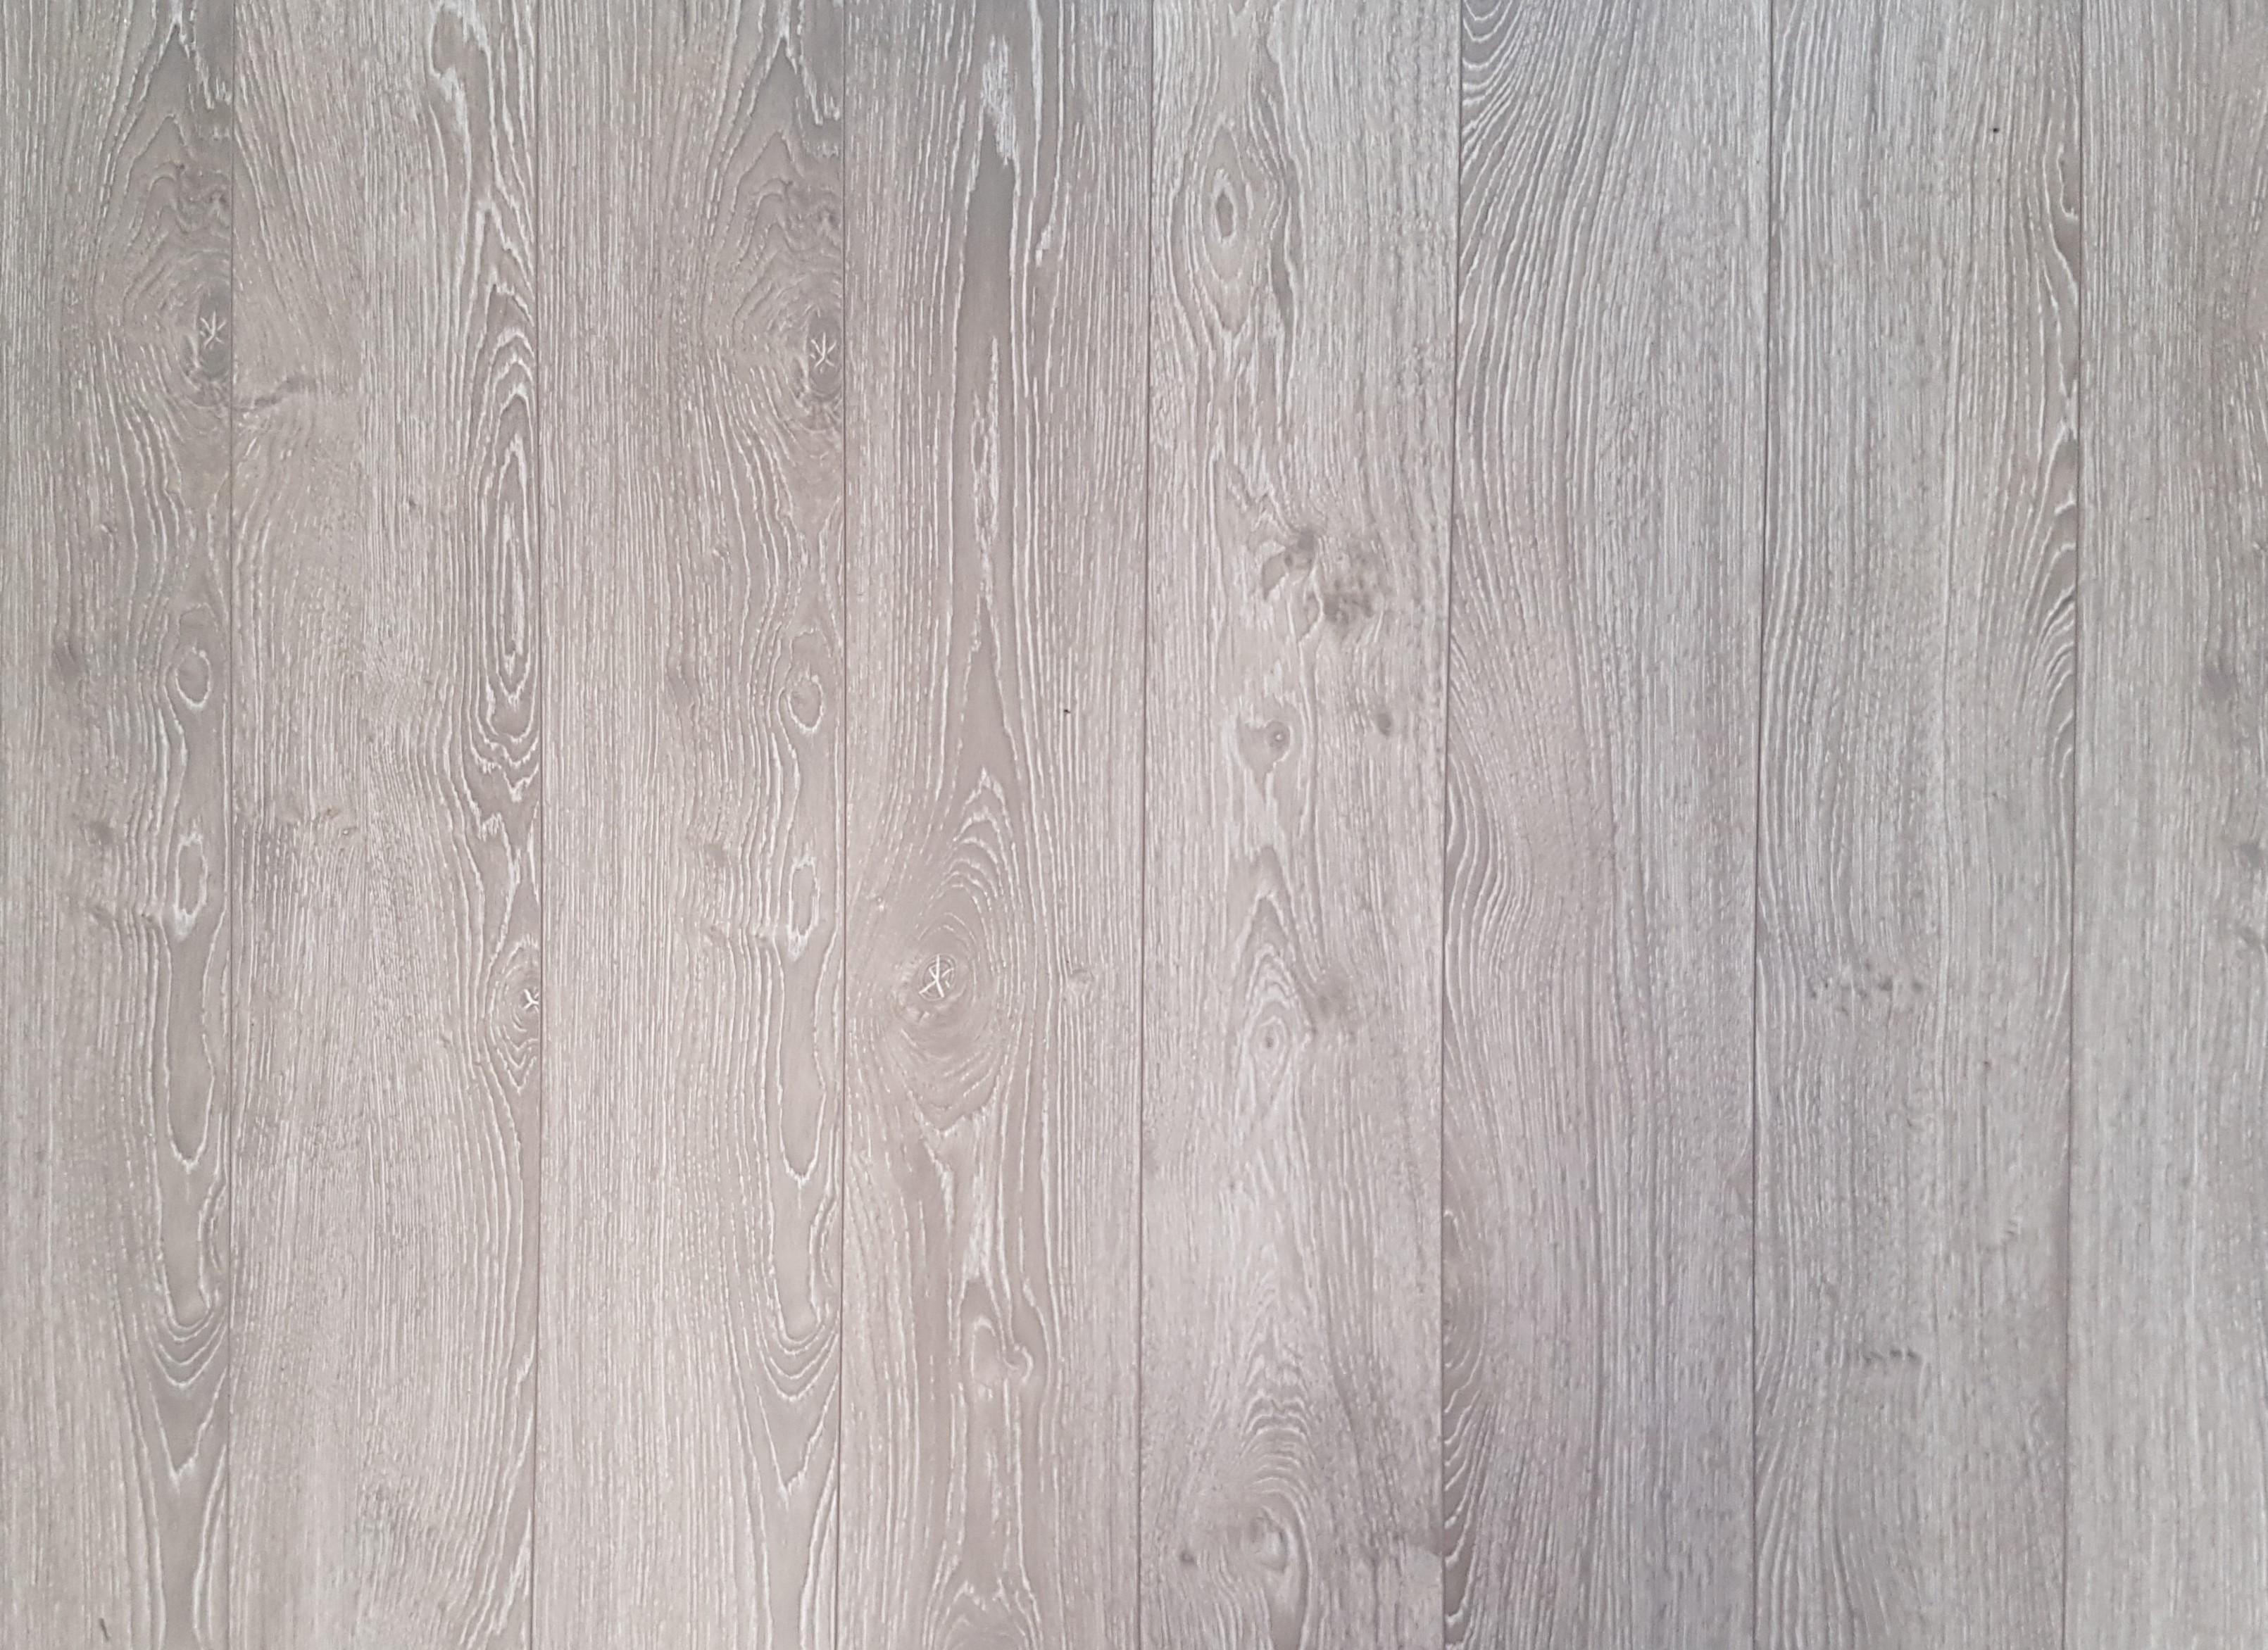 Lend a Stylish Really feel to the Flooring With Wooden Wanting Tiles